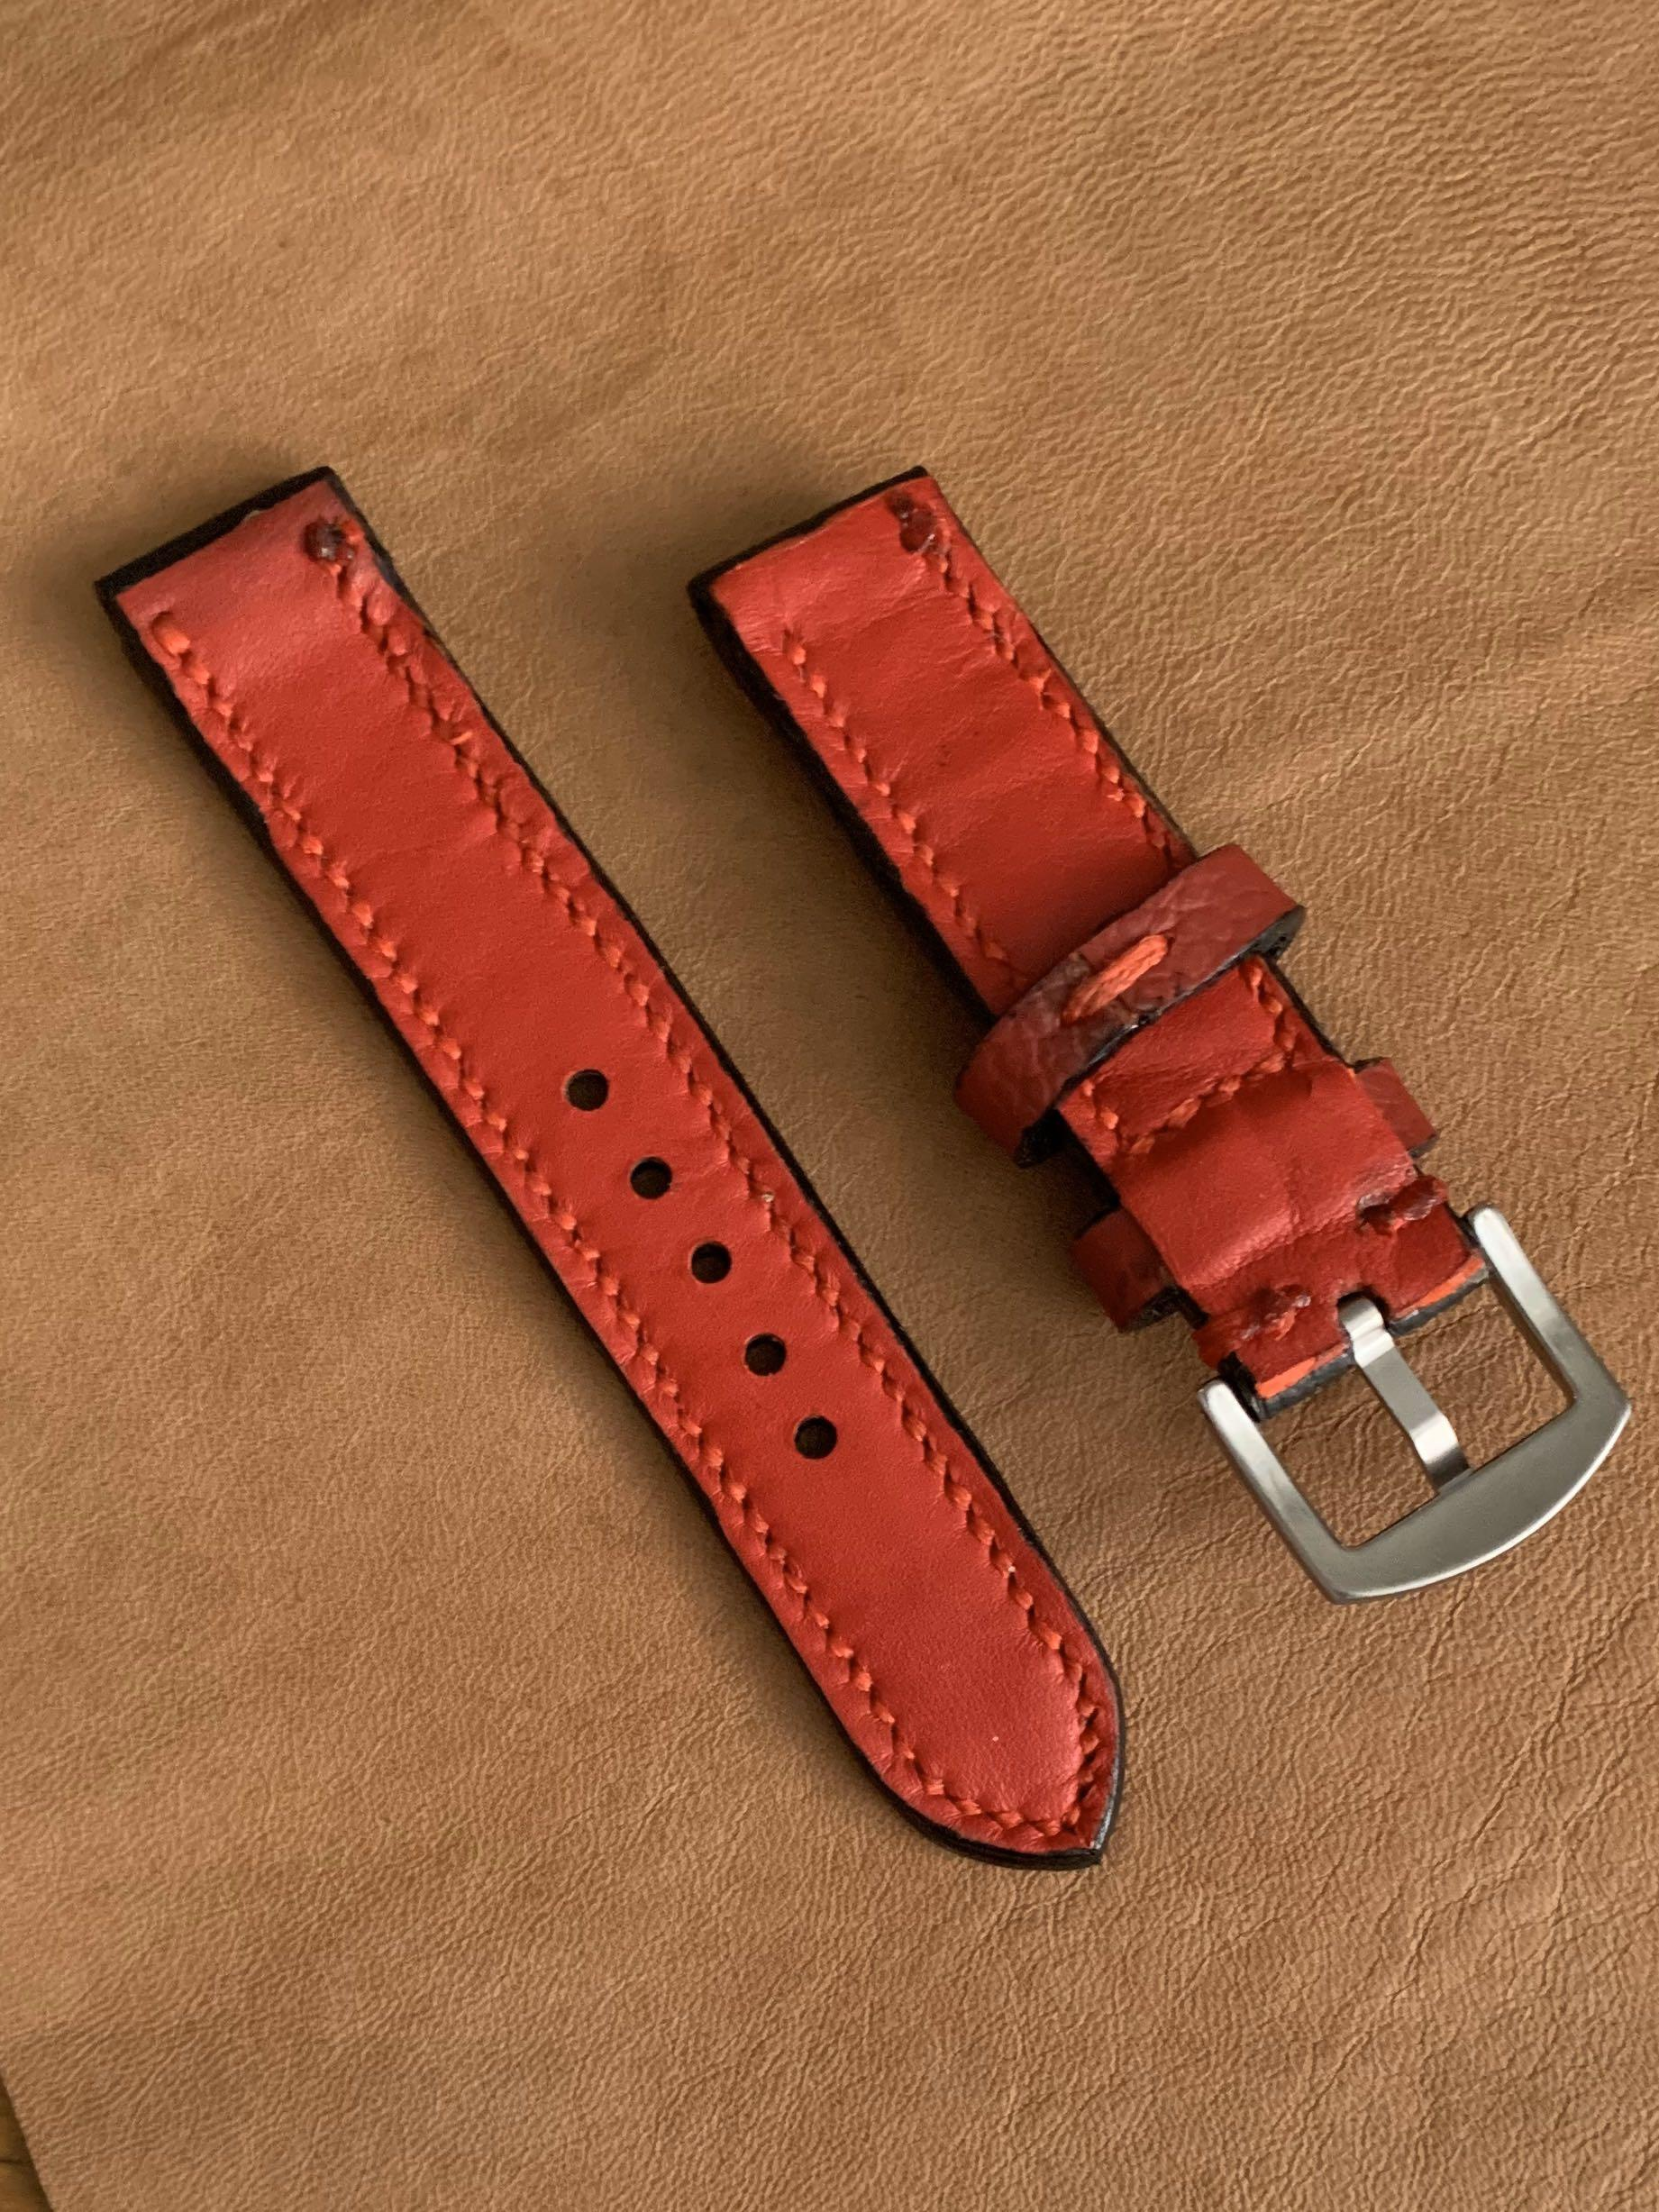 20mm/20mm Calf Leather Black Strap with Ferrari Red Stitching and Matching Comfortable Goatskin Lining Leather Watch Strap - 20mm@lug/20mm@buckle   (Length- L:120mm, S:75mm) (only 1 piece like that 😊- once sold, no more)-looks excellent on diver watches!